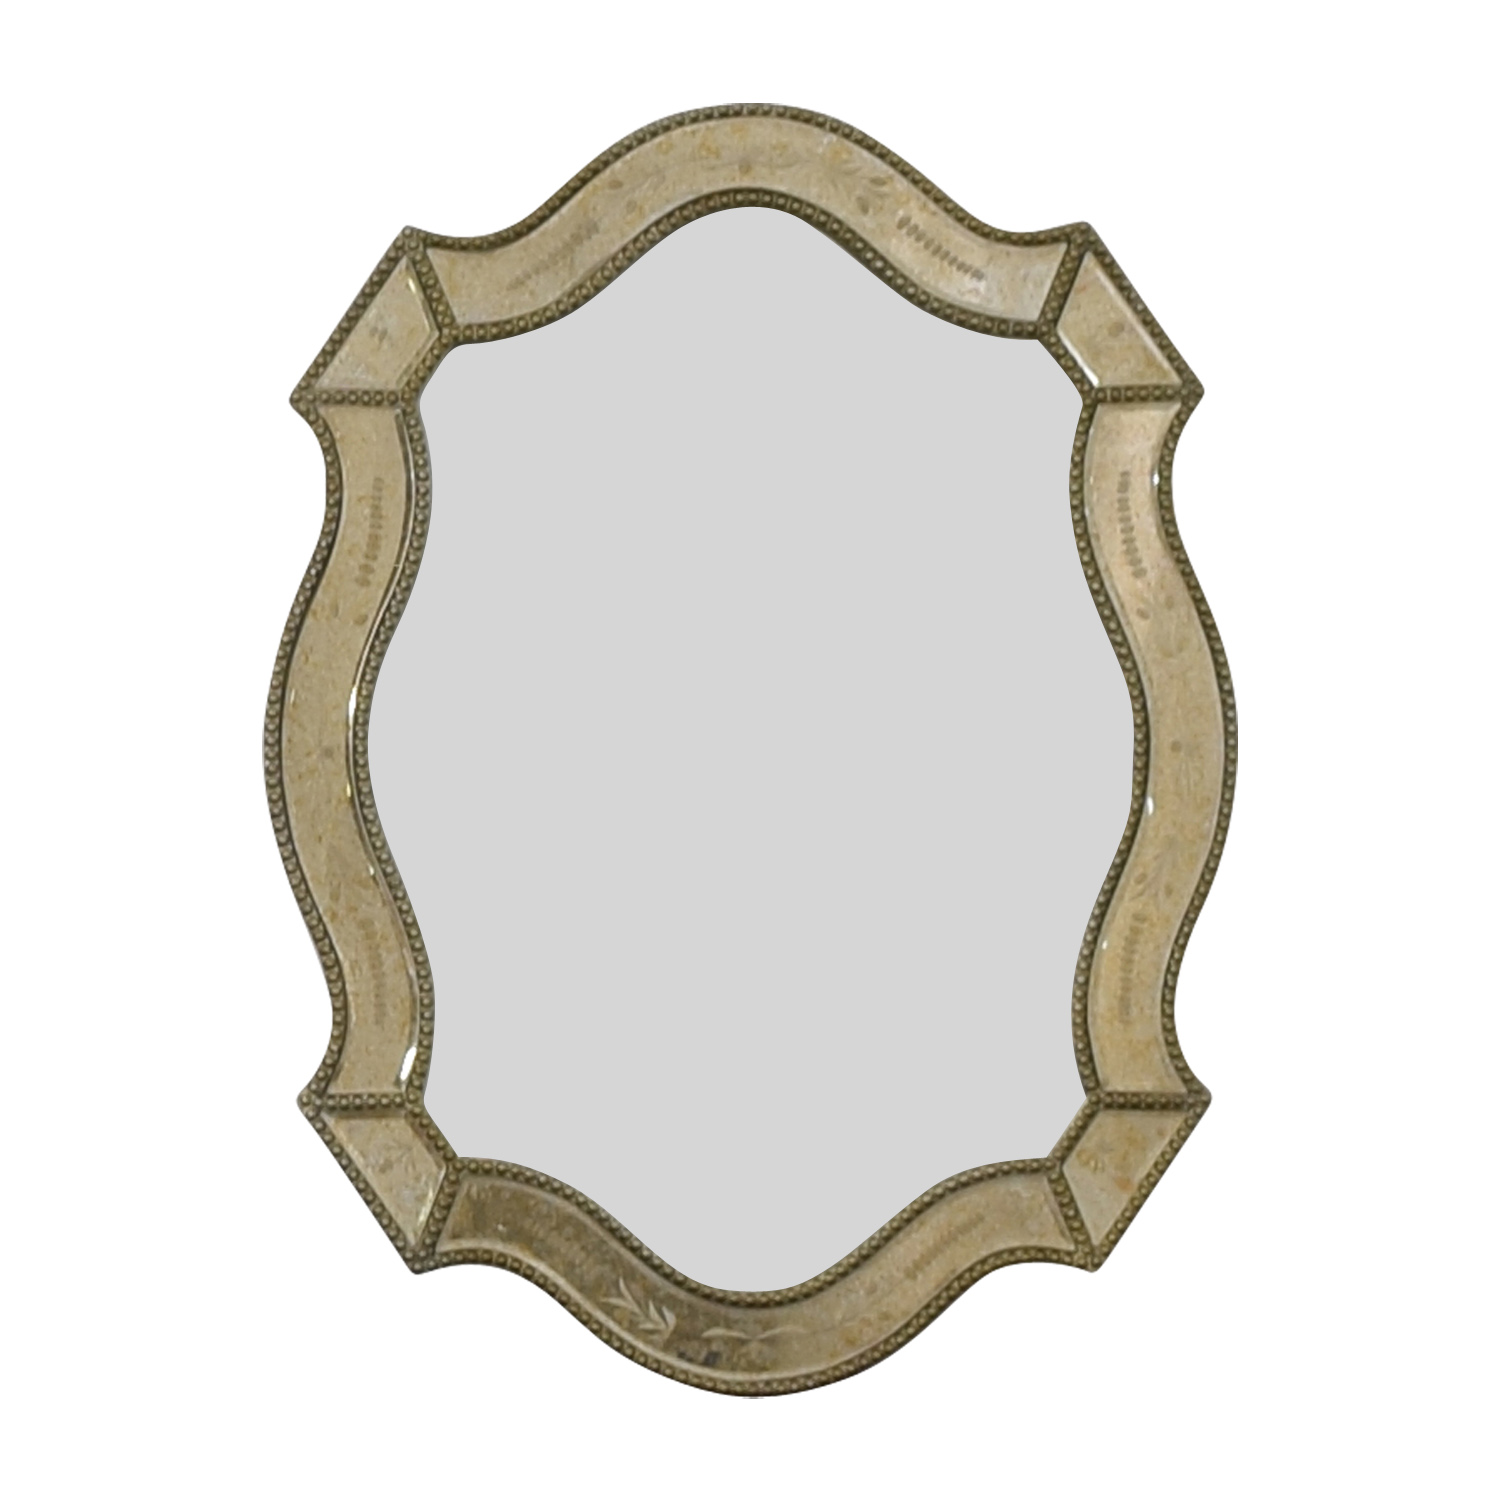 Uttermost Uttermost Distressed Gold Framed Wall Mirror price